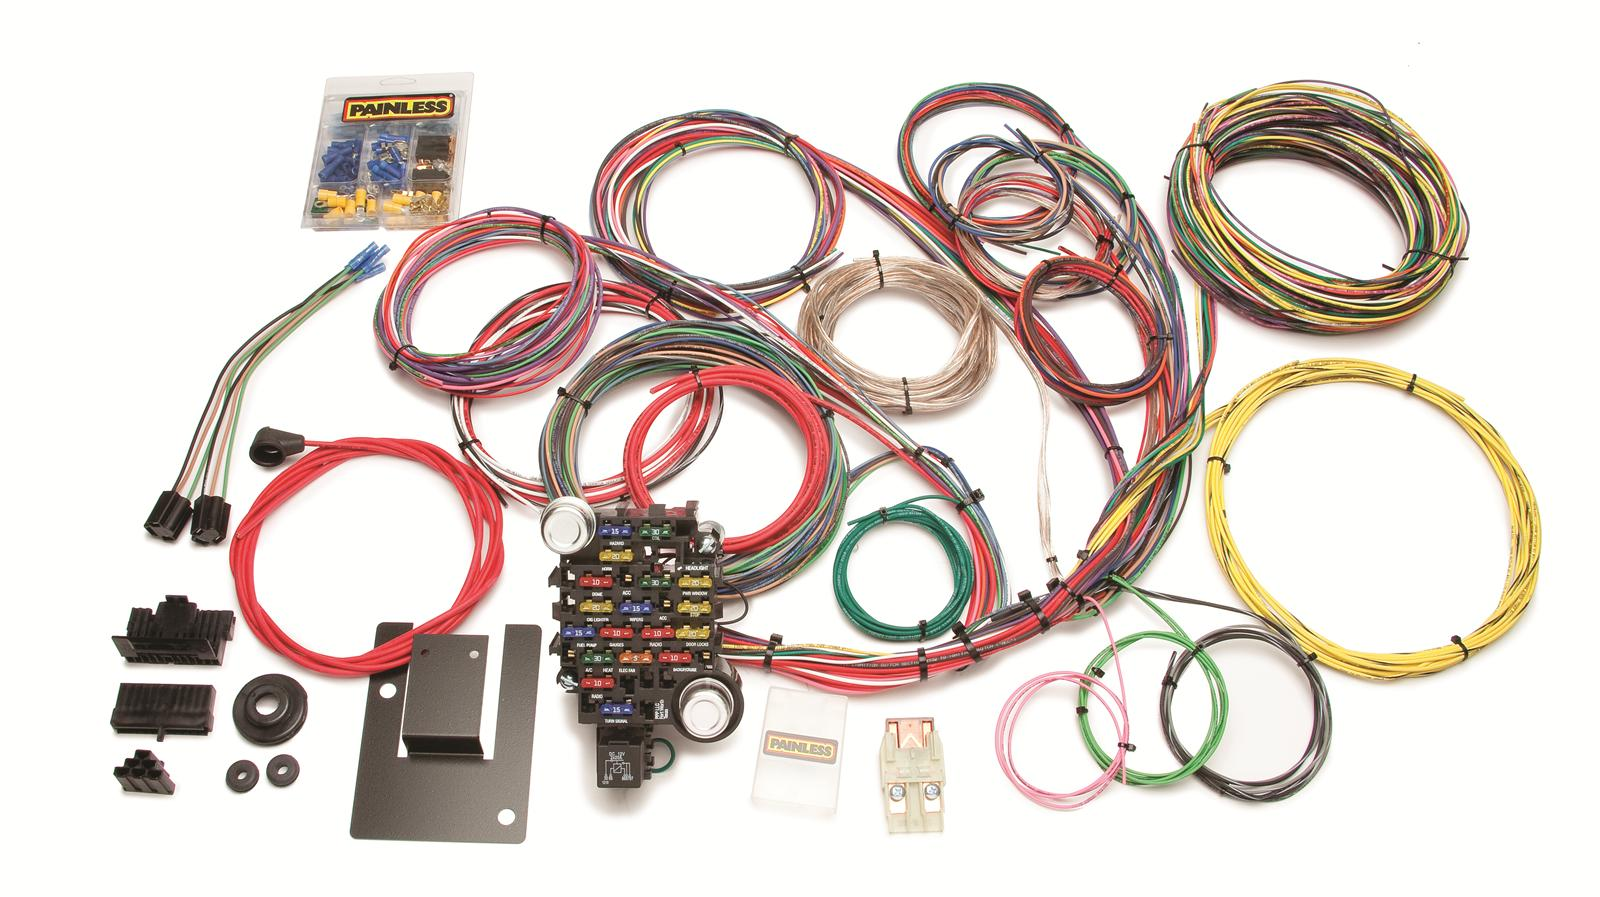 Circuit Wiring Harness on maxi-seal harness, radio harness, alpine stereo harness, battery harness, electrical harness, pet harness, cable harness, suspension harness, fall protection harness, obd0 to obd1 conversion harness, nakamichi harness, swing harness, oxygen sensor extension harness, dog harness, amp bypass harness, pony harness, engine harness, safety harness,